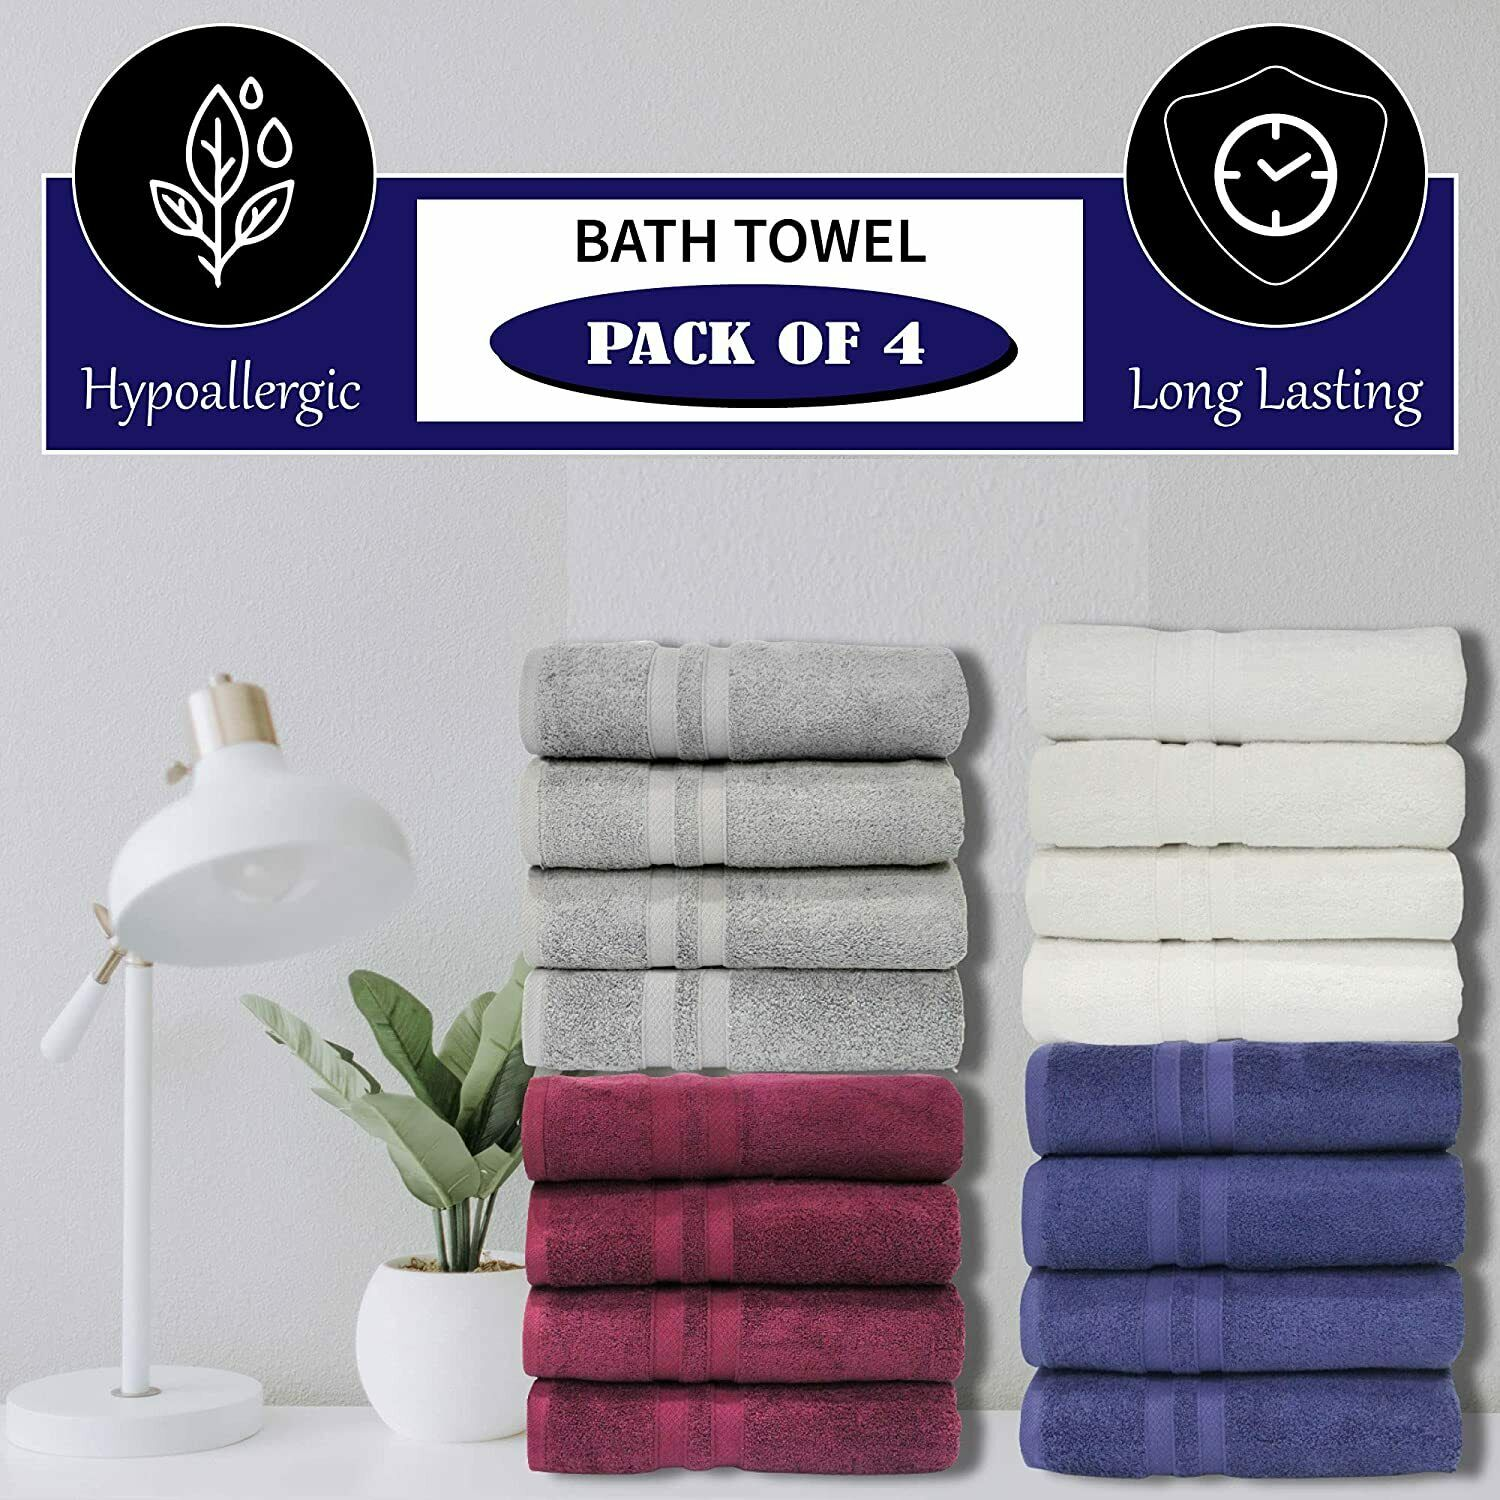 Premium Bath Towels Set 600 GSM 100% Cotton Highly Absorbent Soft Pack of 4